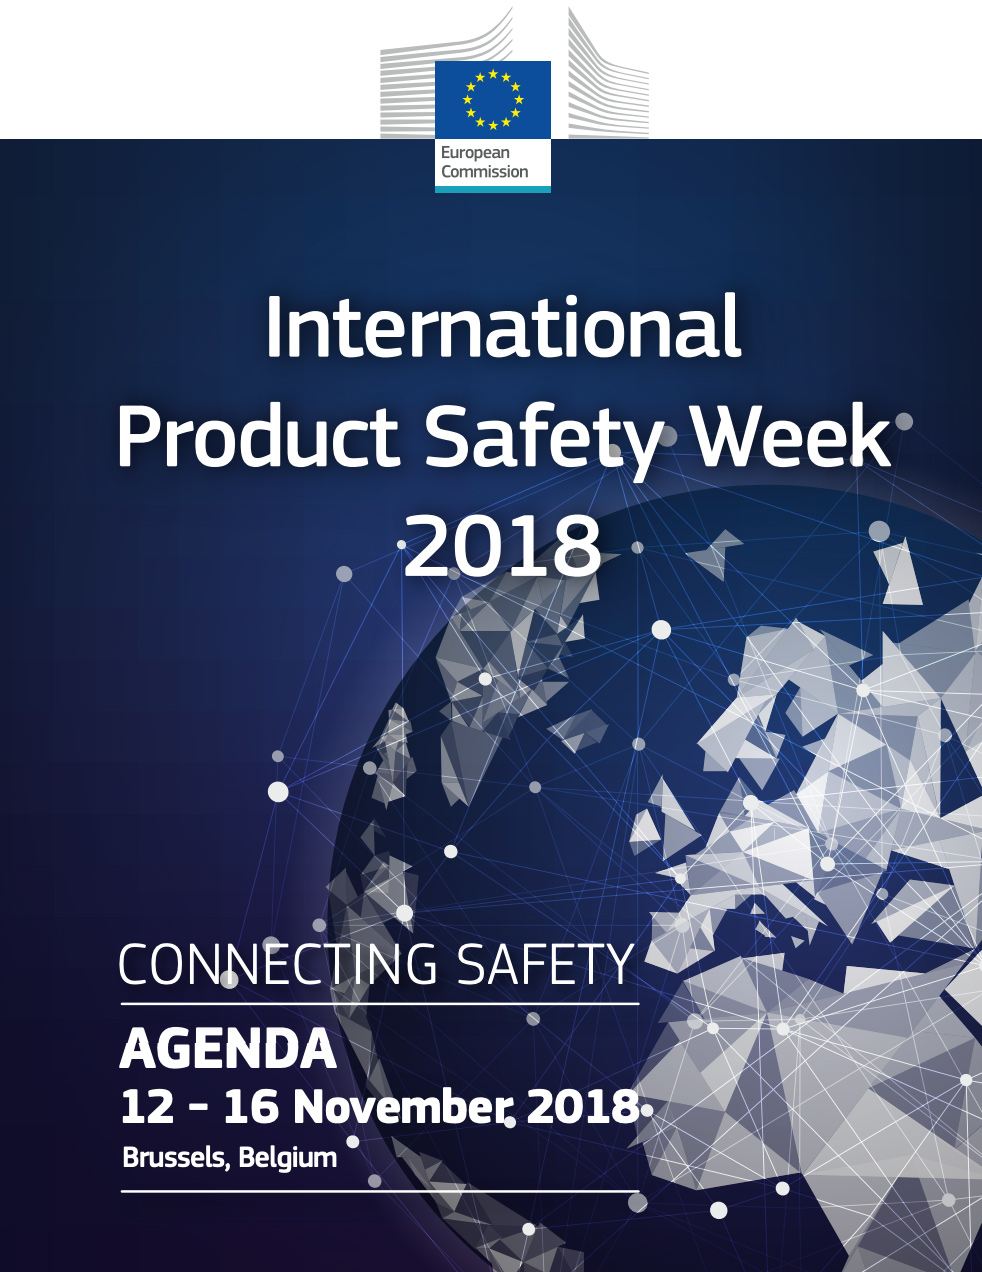 International Product Safety Week 2018